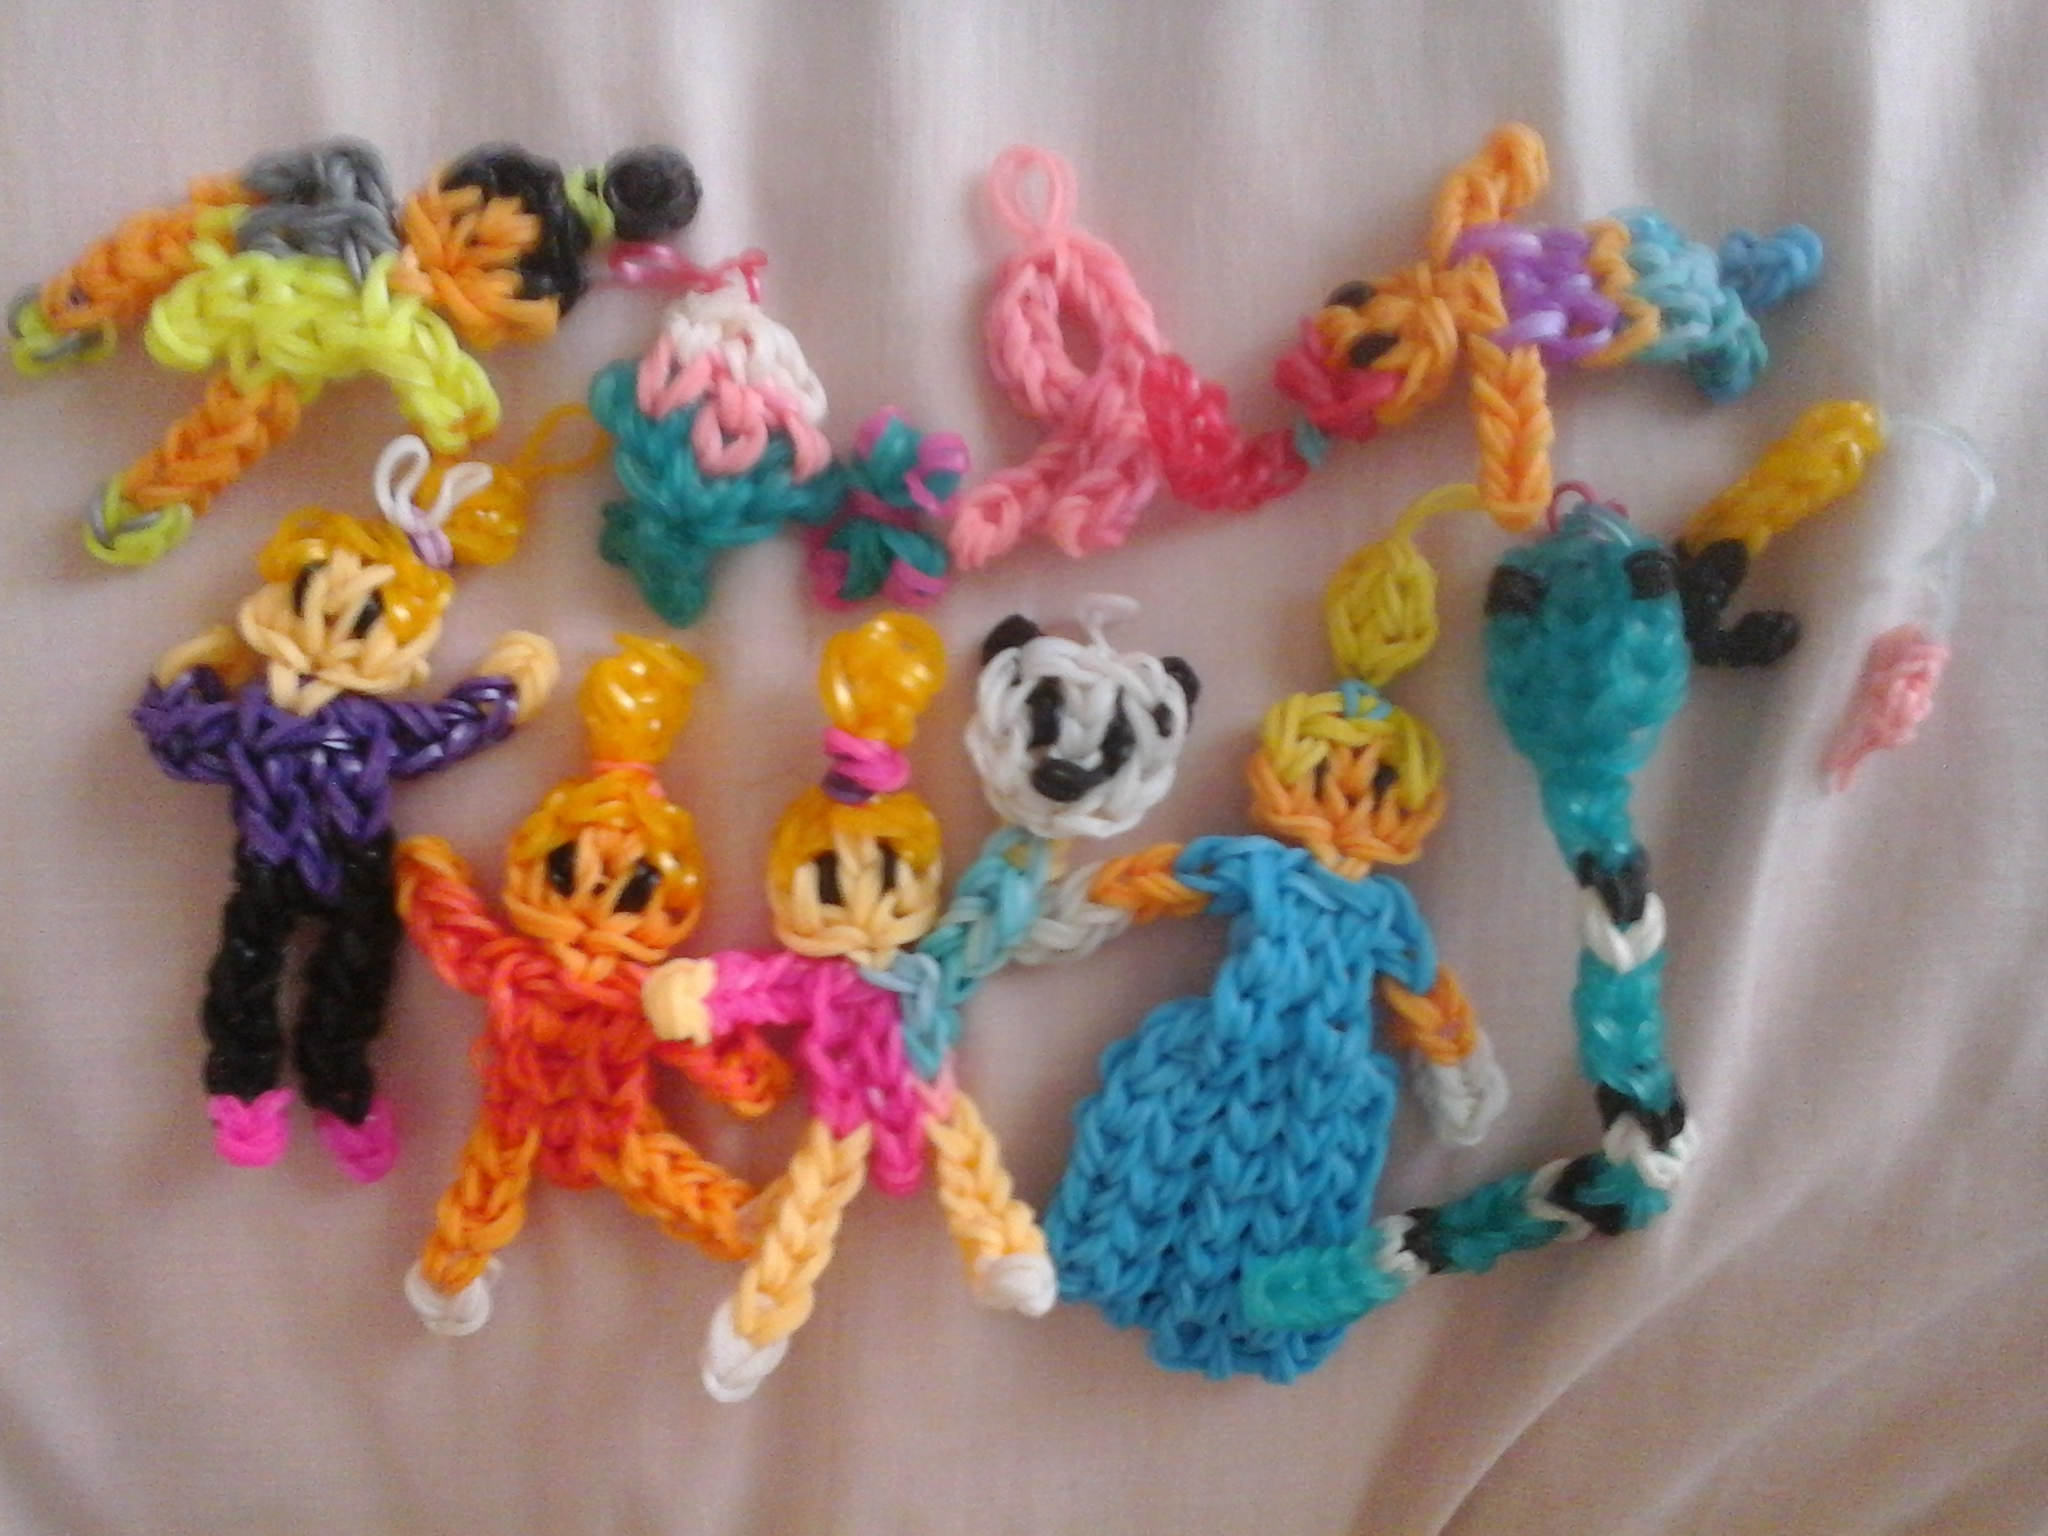 Some of my loom charms tell me if you want tutorials